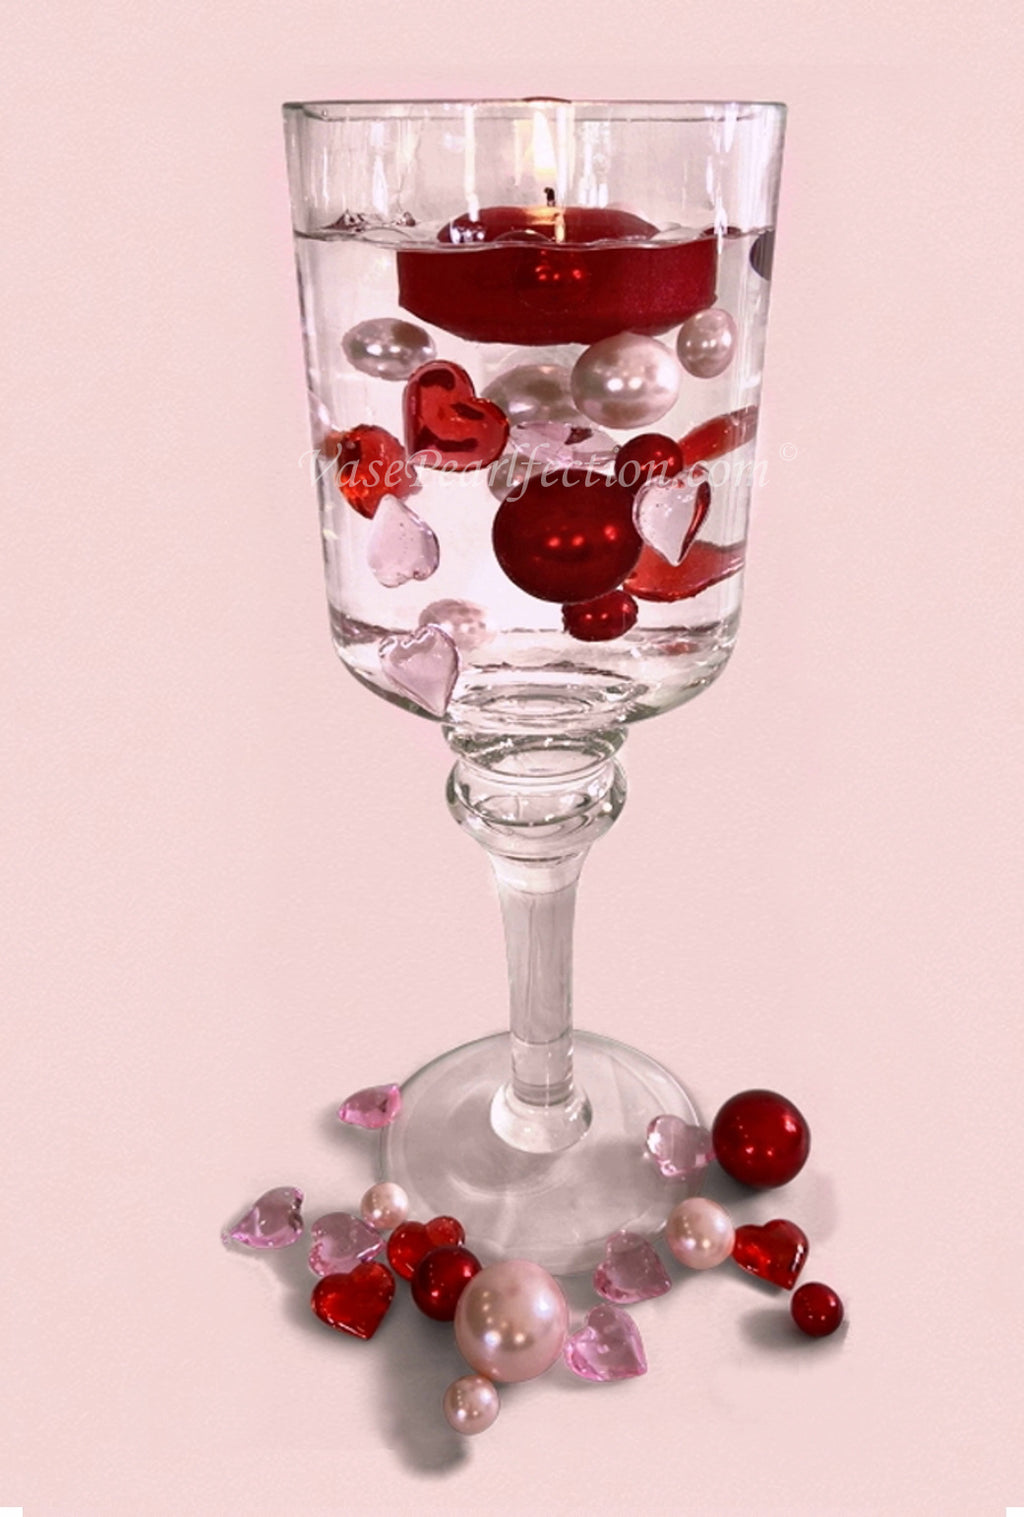 Floating Mother's Day/Valentine Red & Light Pink Pearls with Matching Heart Gems - Jumbo/Assorted Sizes for Vase Decorations & Table Scatter